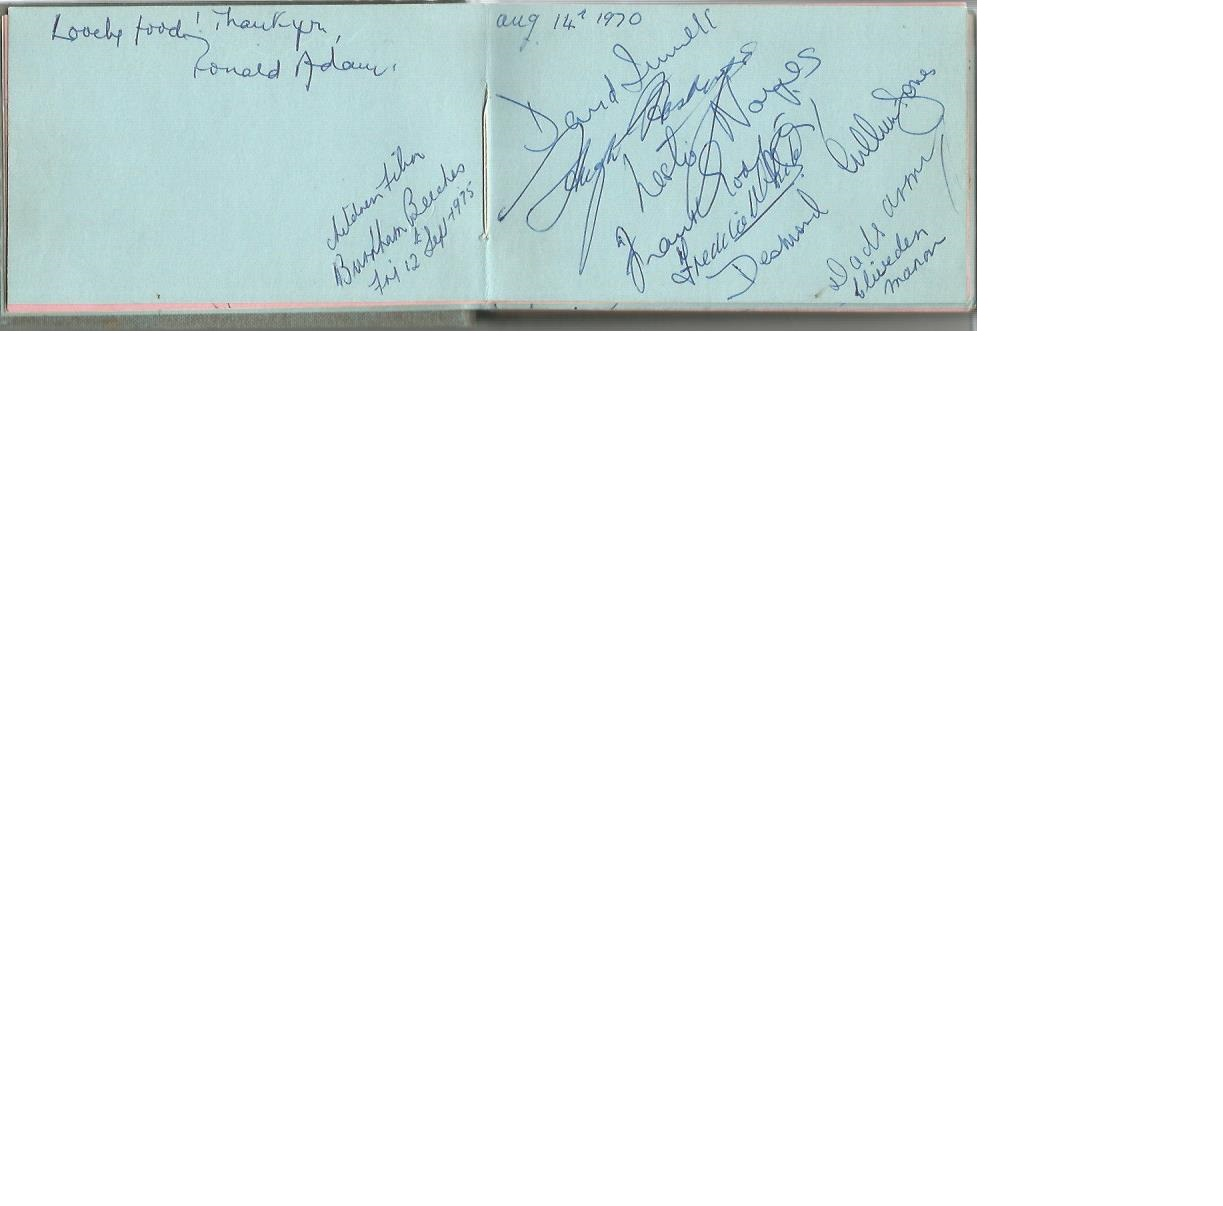 Lot 21 - Dads Army and Entertainment autograph collection in 1970s autograph album. Signatures include Arnold